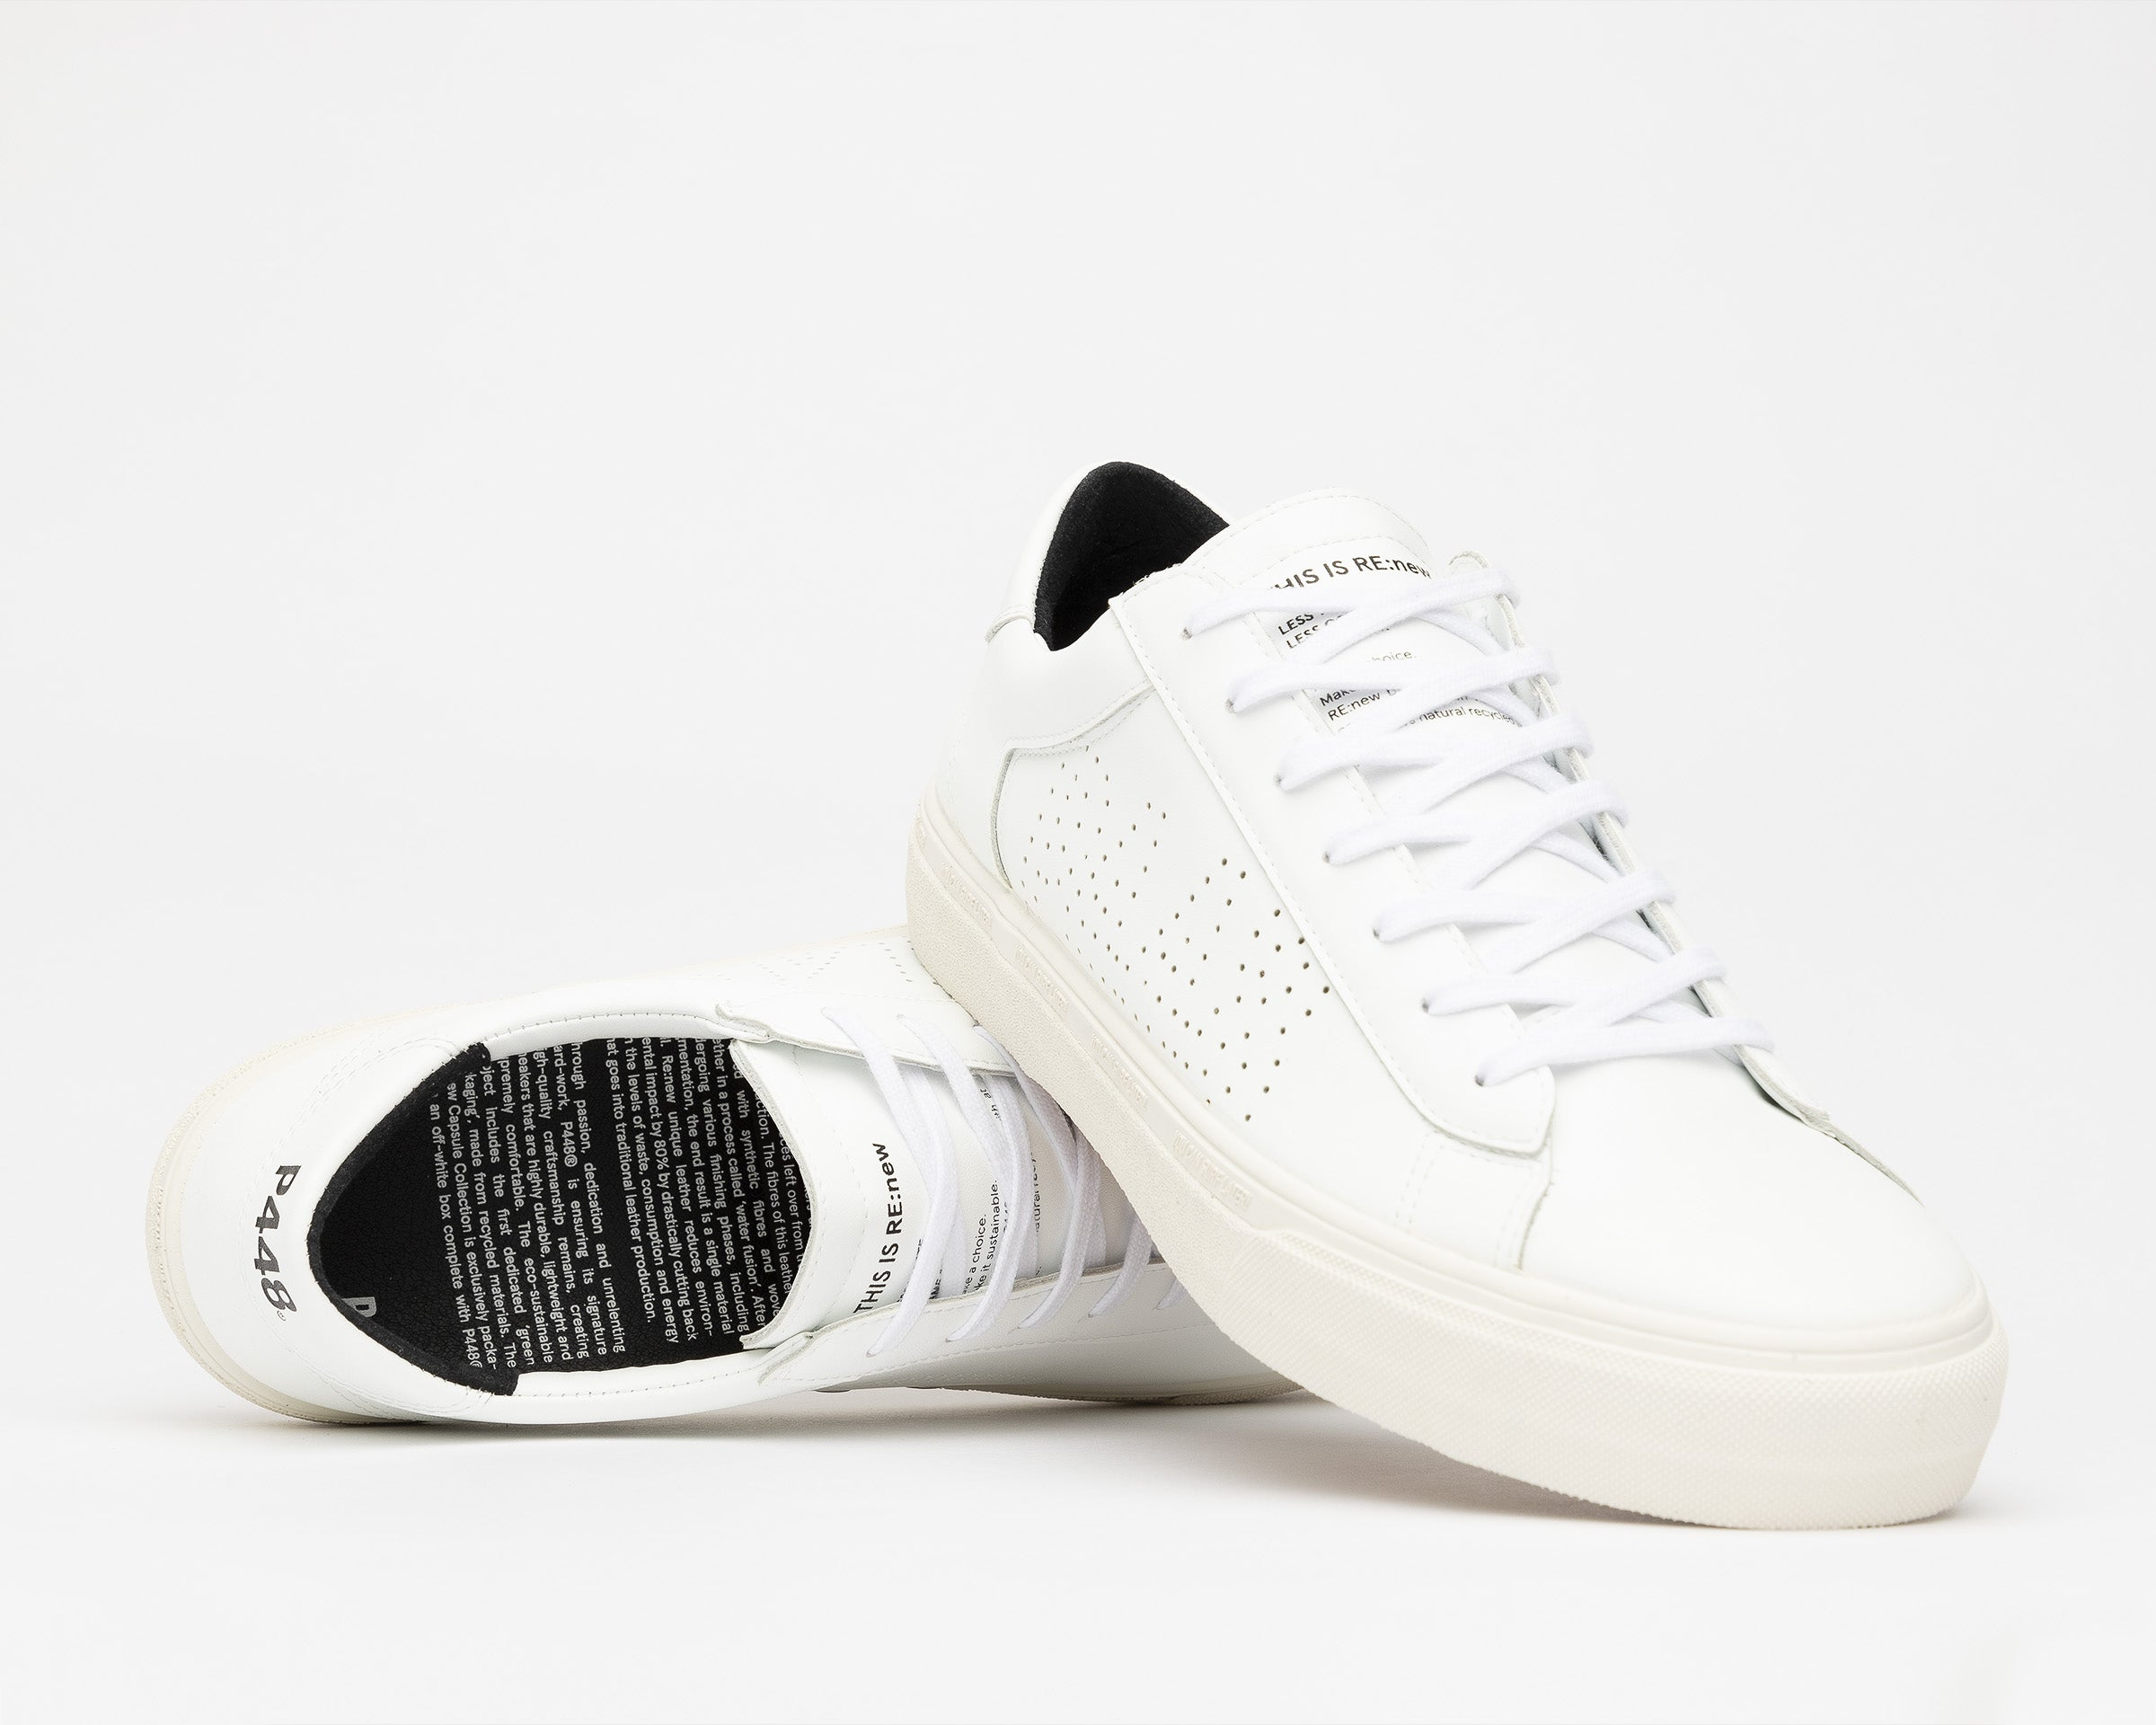 Y.C.S.L. Low-Top Volcanized Sneaker in WhiteR-M - Detail 1